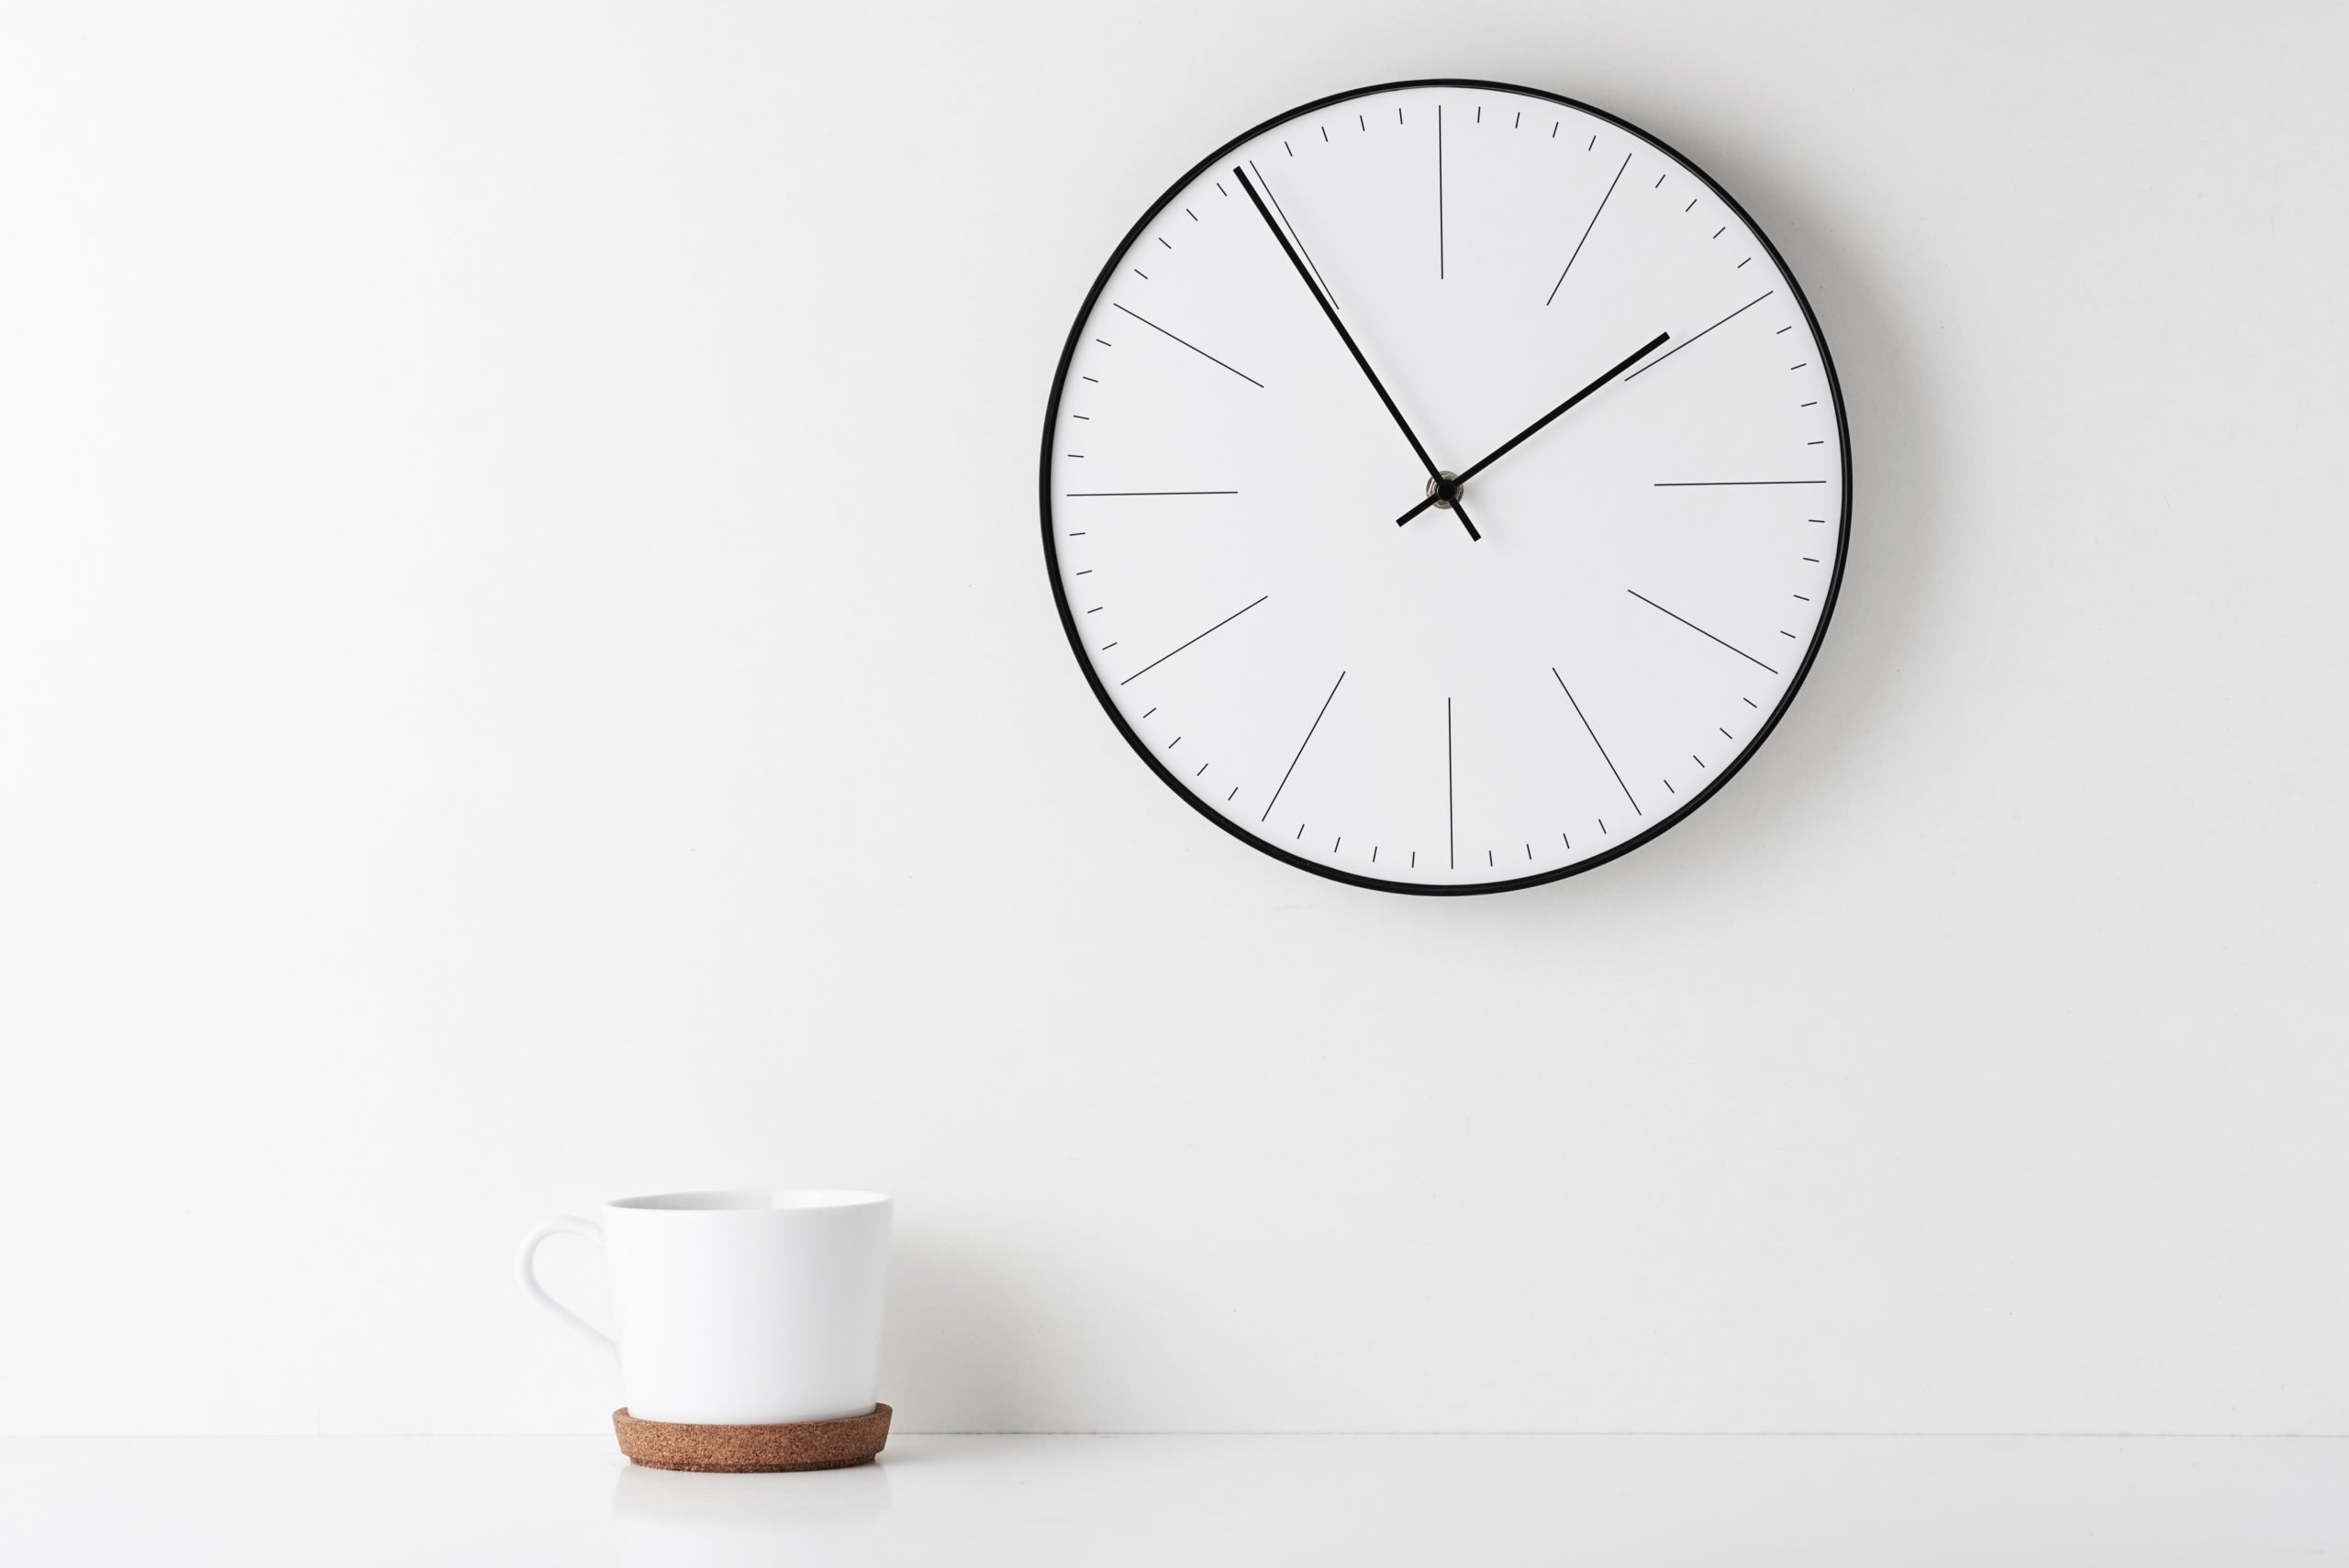 Close-Up Of Coffee Cup On Table Wall With Clock